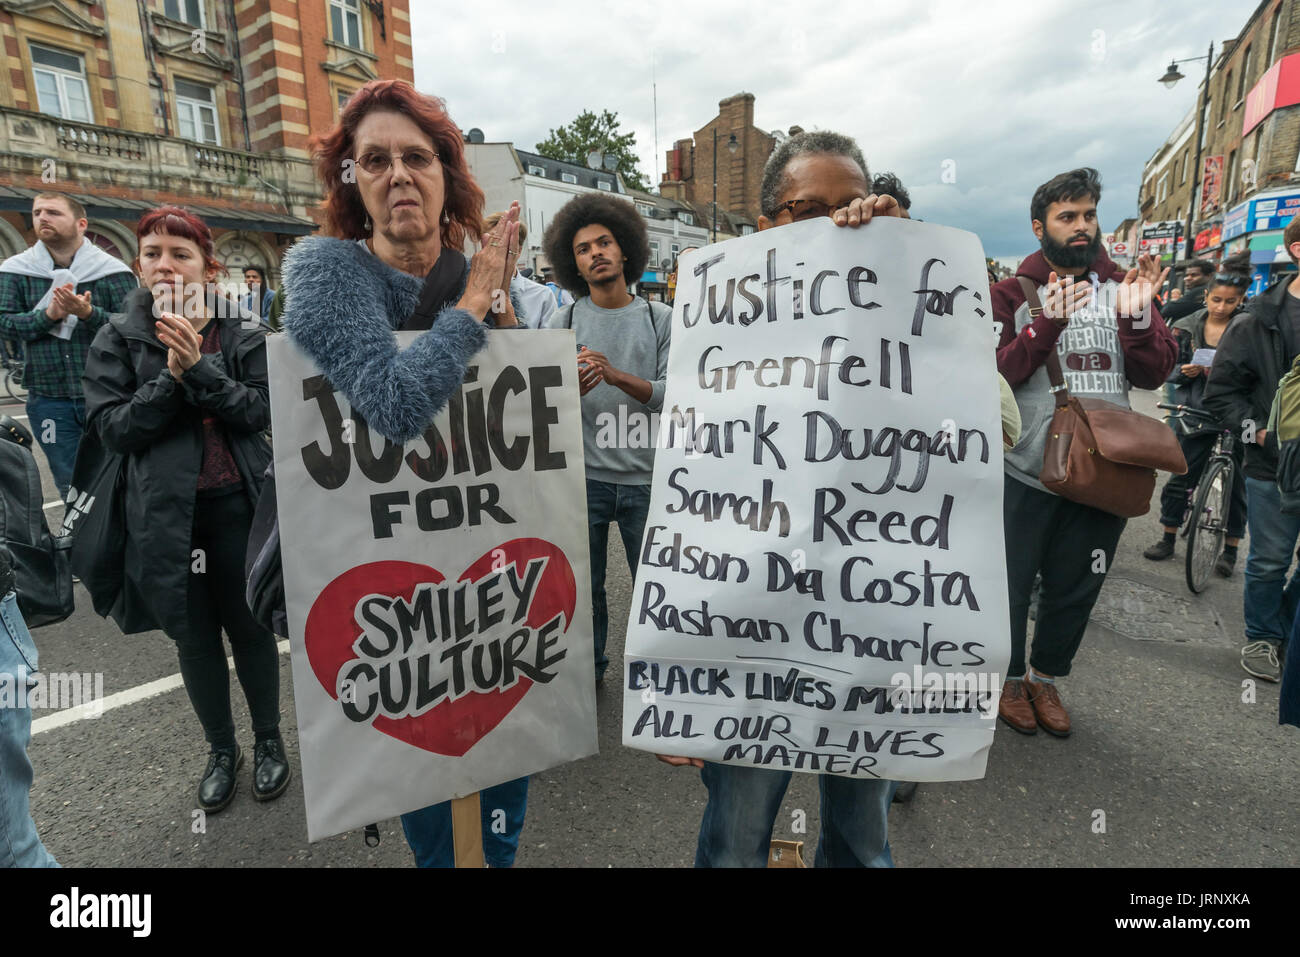 London, UK. 4th Aug, 2017. London, UK. 4th August 2017. People at the rally at Tottenham Police Station remembering the death of Mark Duggan on the sixth anniversary of his killing by police, and also the police killing of other members of the Tottenham community - Cynthia Jarrett, Joy Gardner, Roger Sylvester, Mark Duggan and Jermaine Baker and the recent murders of Rashan Charles, Darren Cumberbatch and Edson Da Costa. Led by Stafford Scott, there was poetry, a minute of silence and speeches from family members as well as local activists, Becky Shah from the Hillsborough campaign and a sp - Stock Image